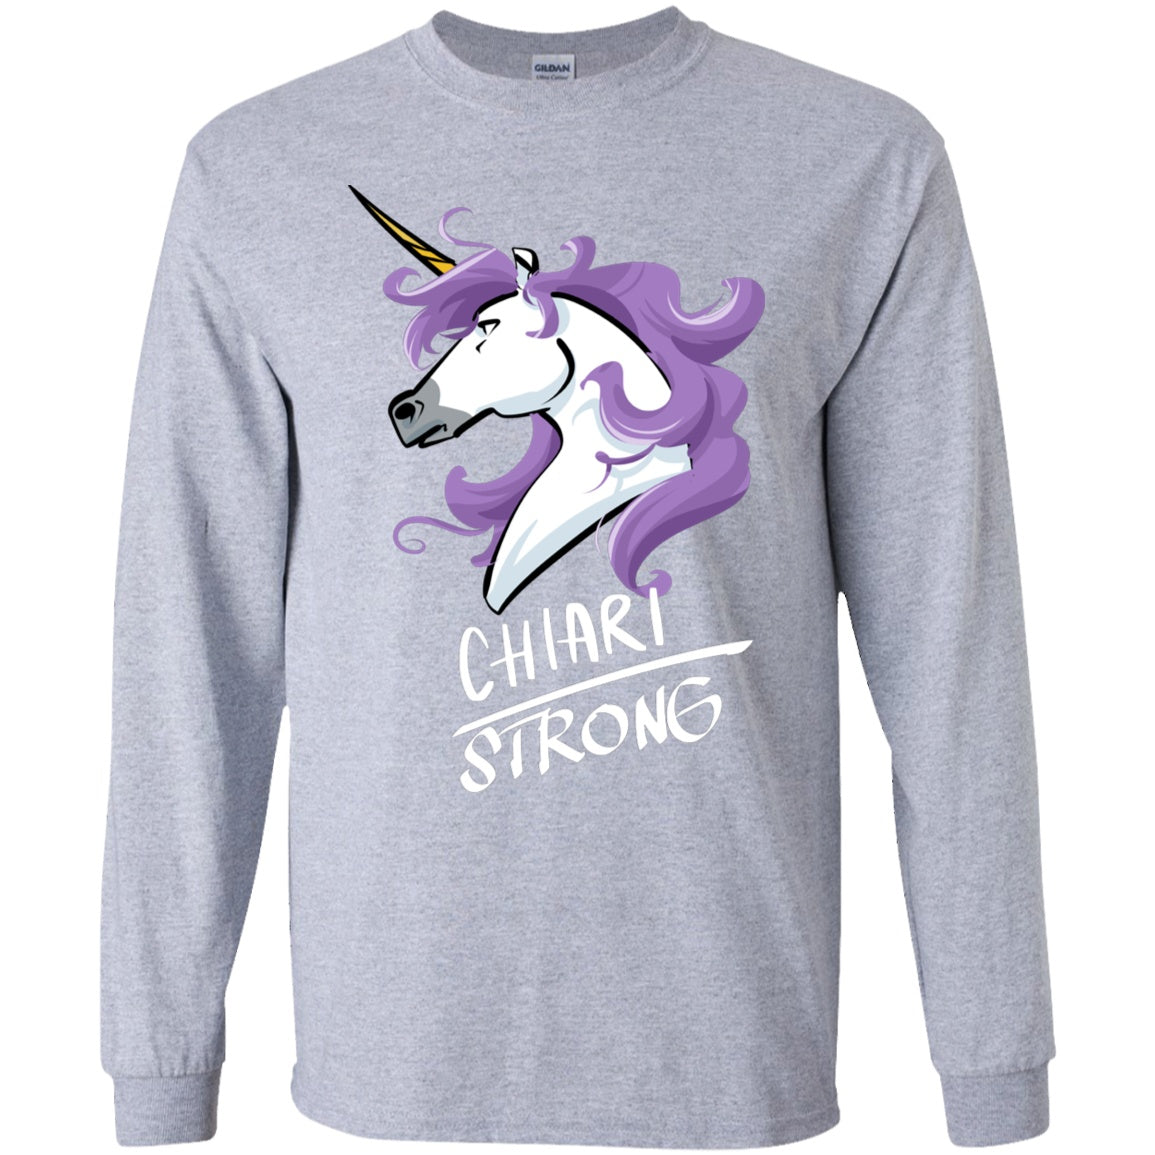 Chiari Strong Unicorn Youth Long Sleeve Unisex - The Unchargeables